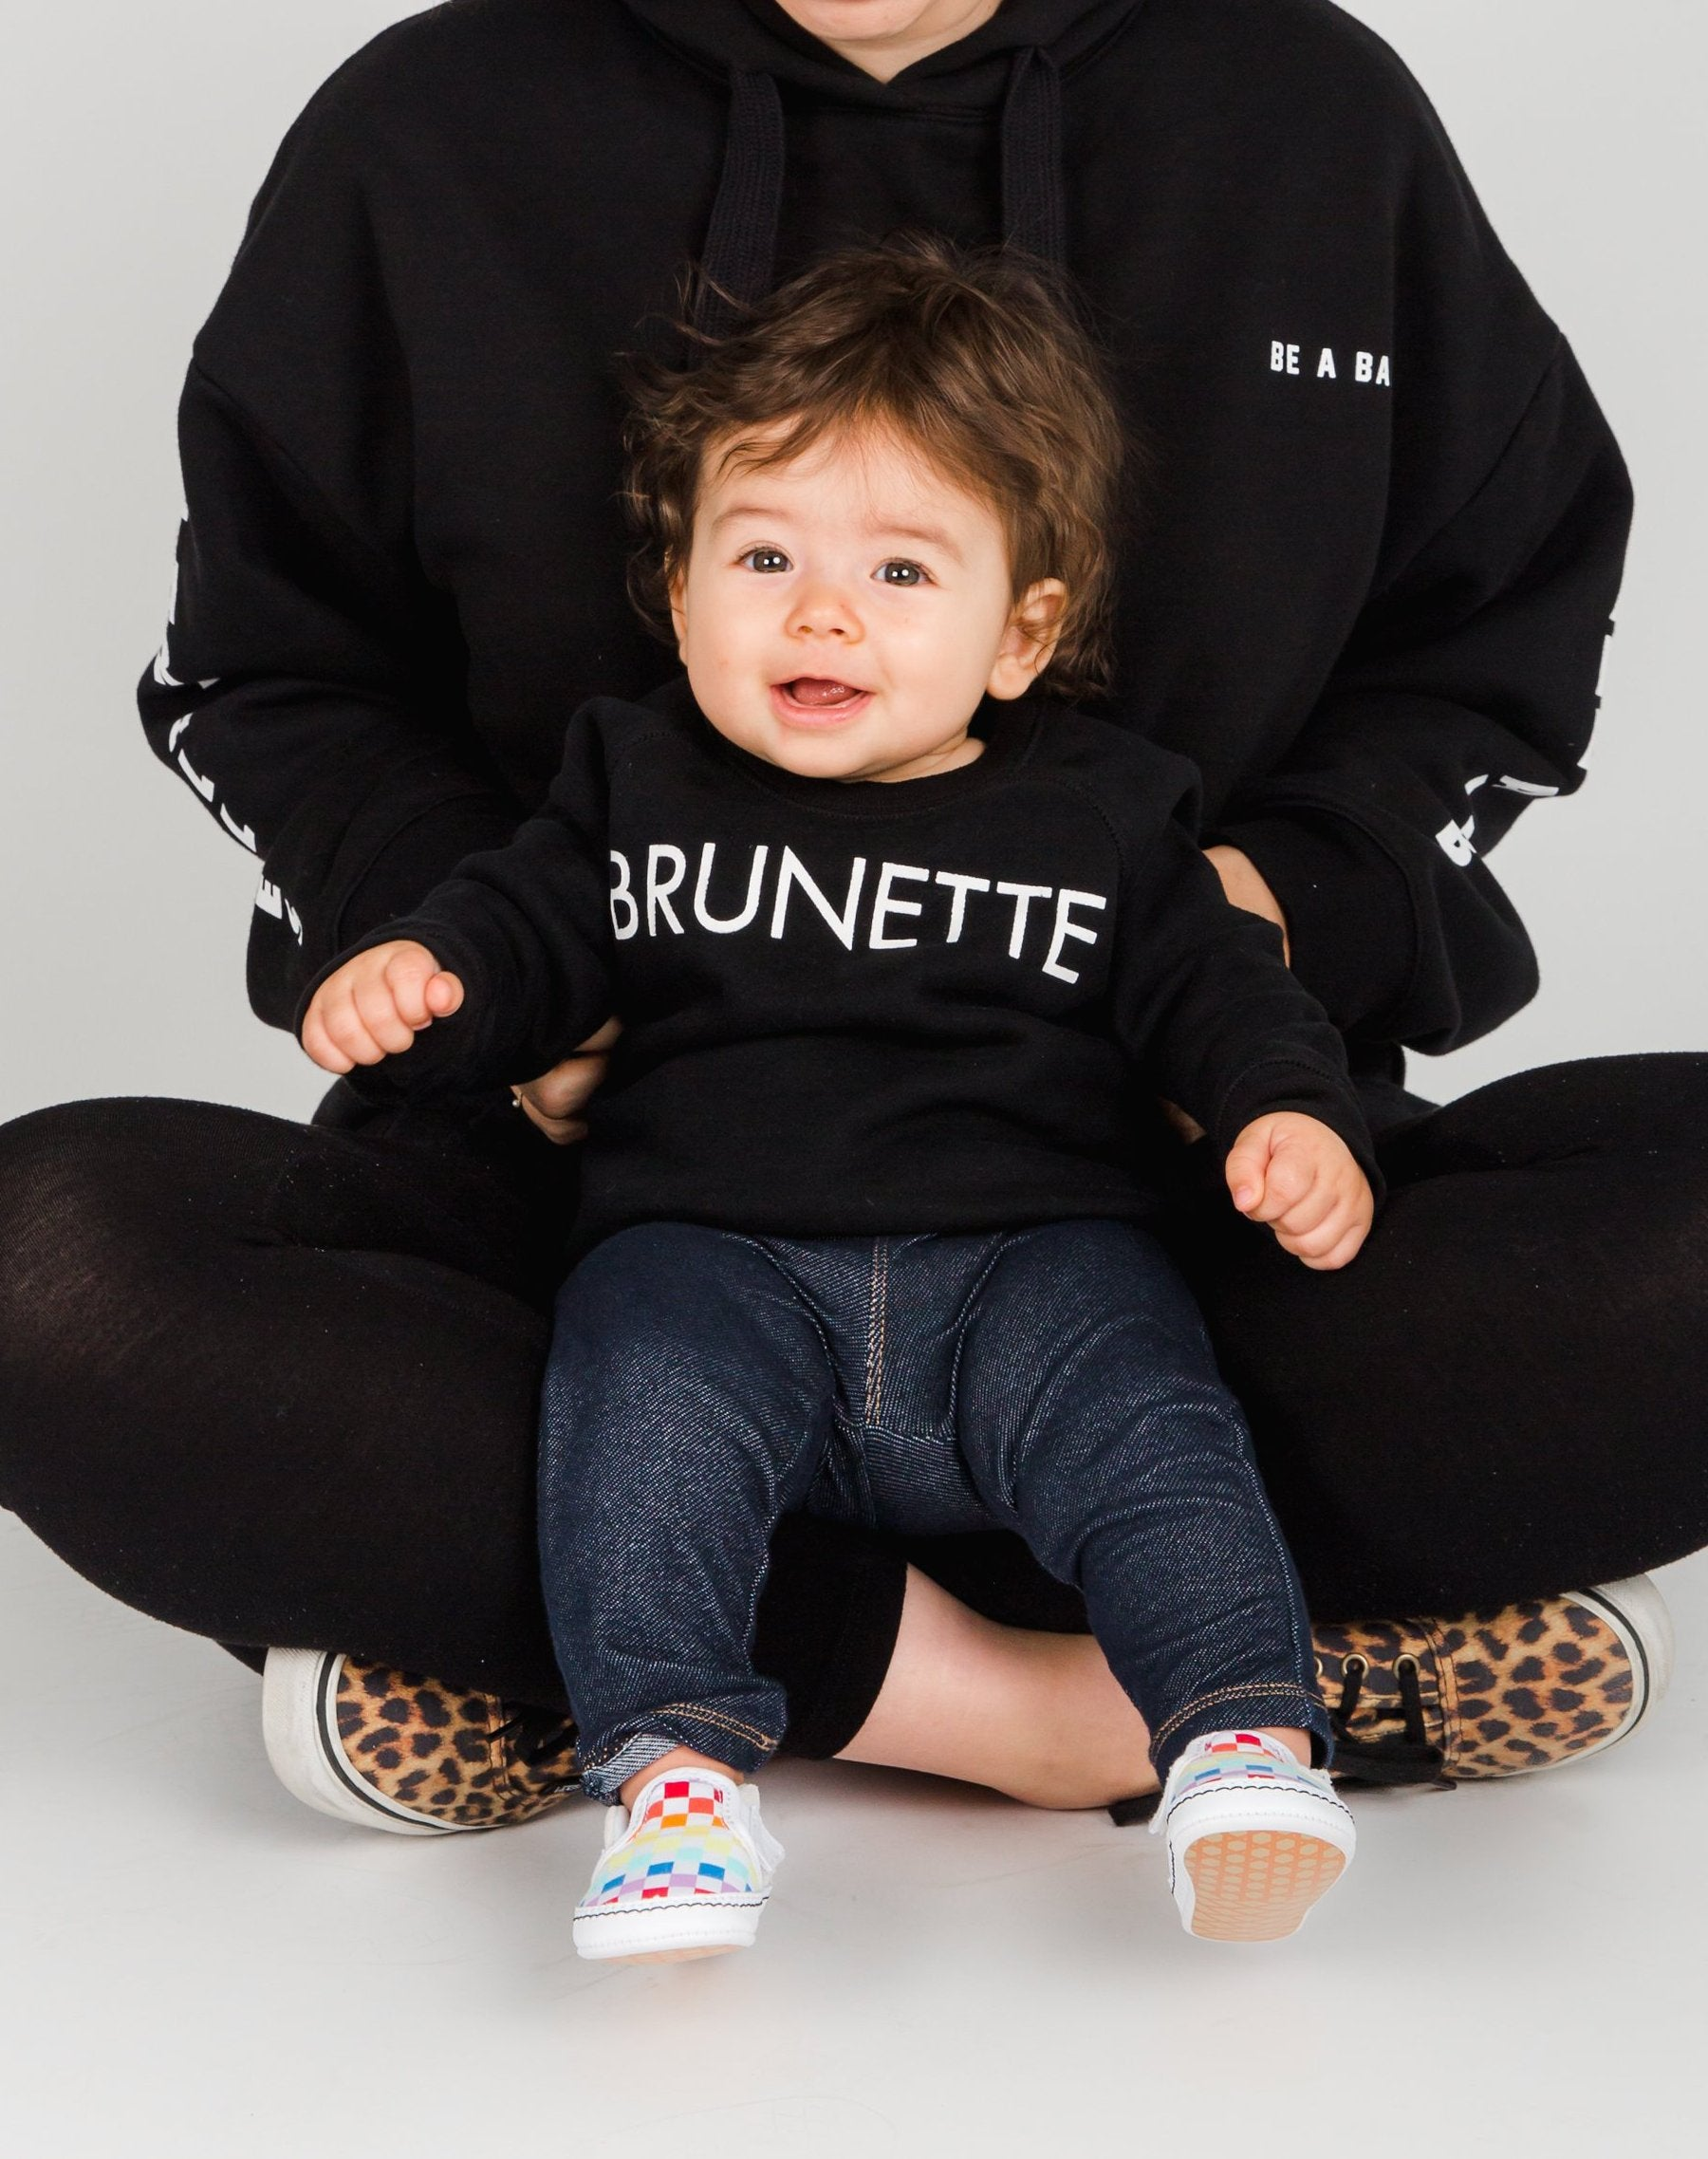 Photo of baby wearing the Brunette Little Babes classic crew neck sweatshirt in black by Brunette the Label.